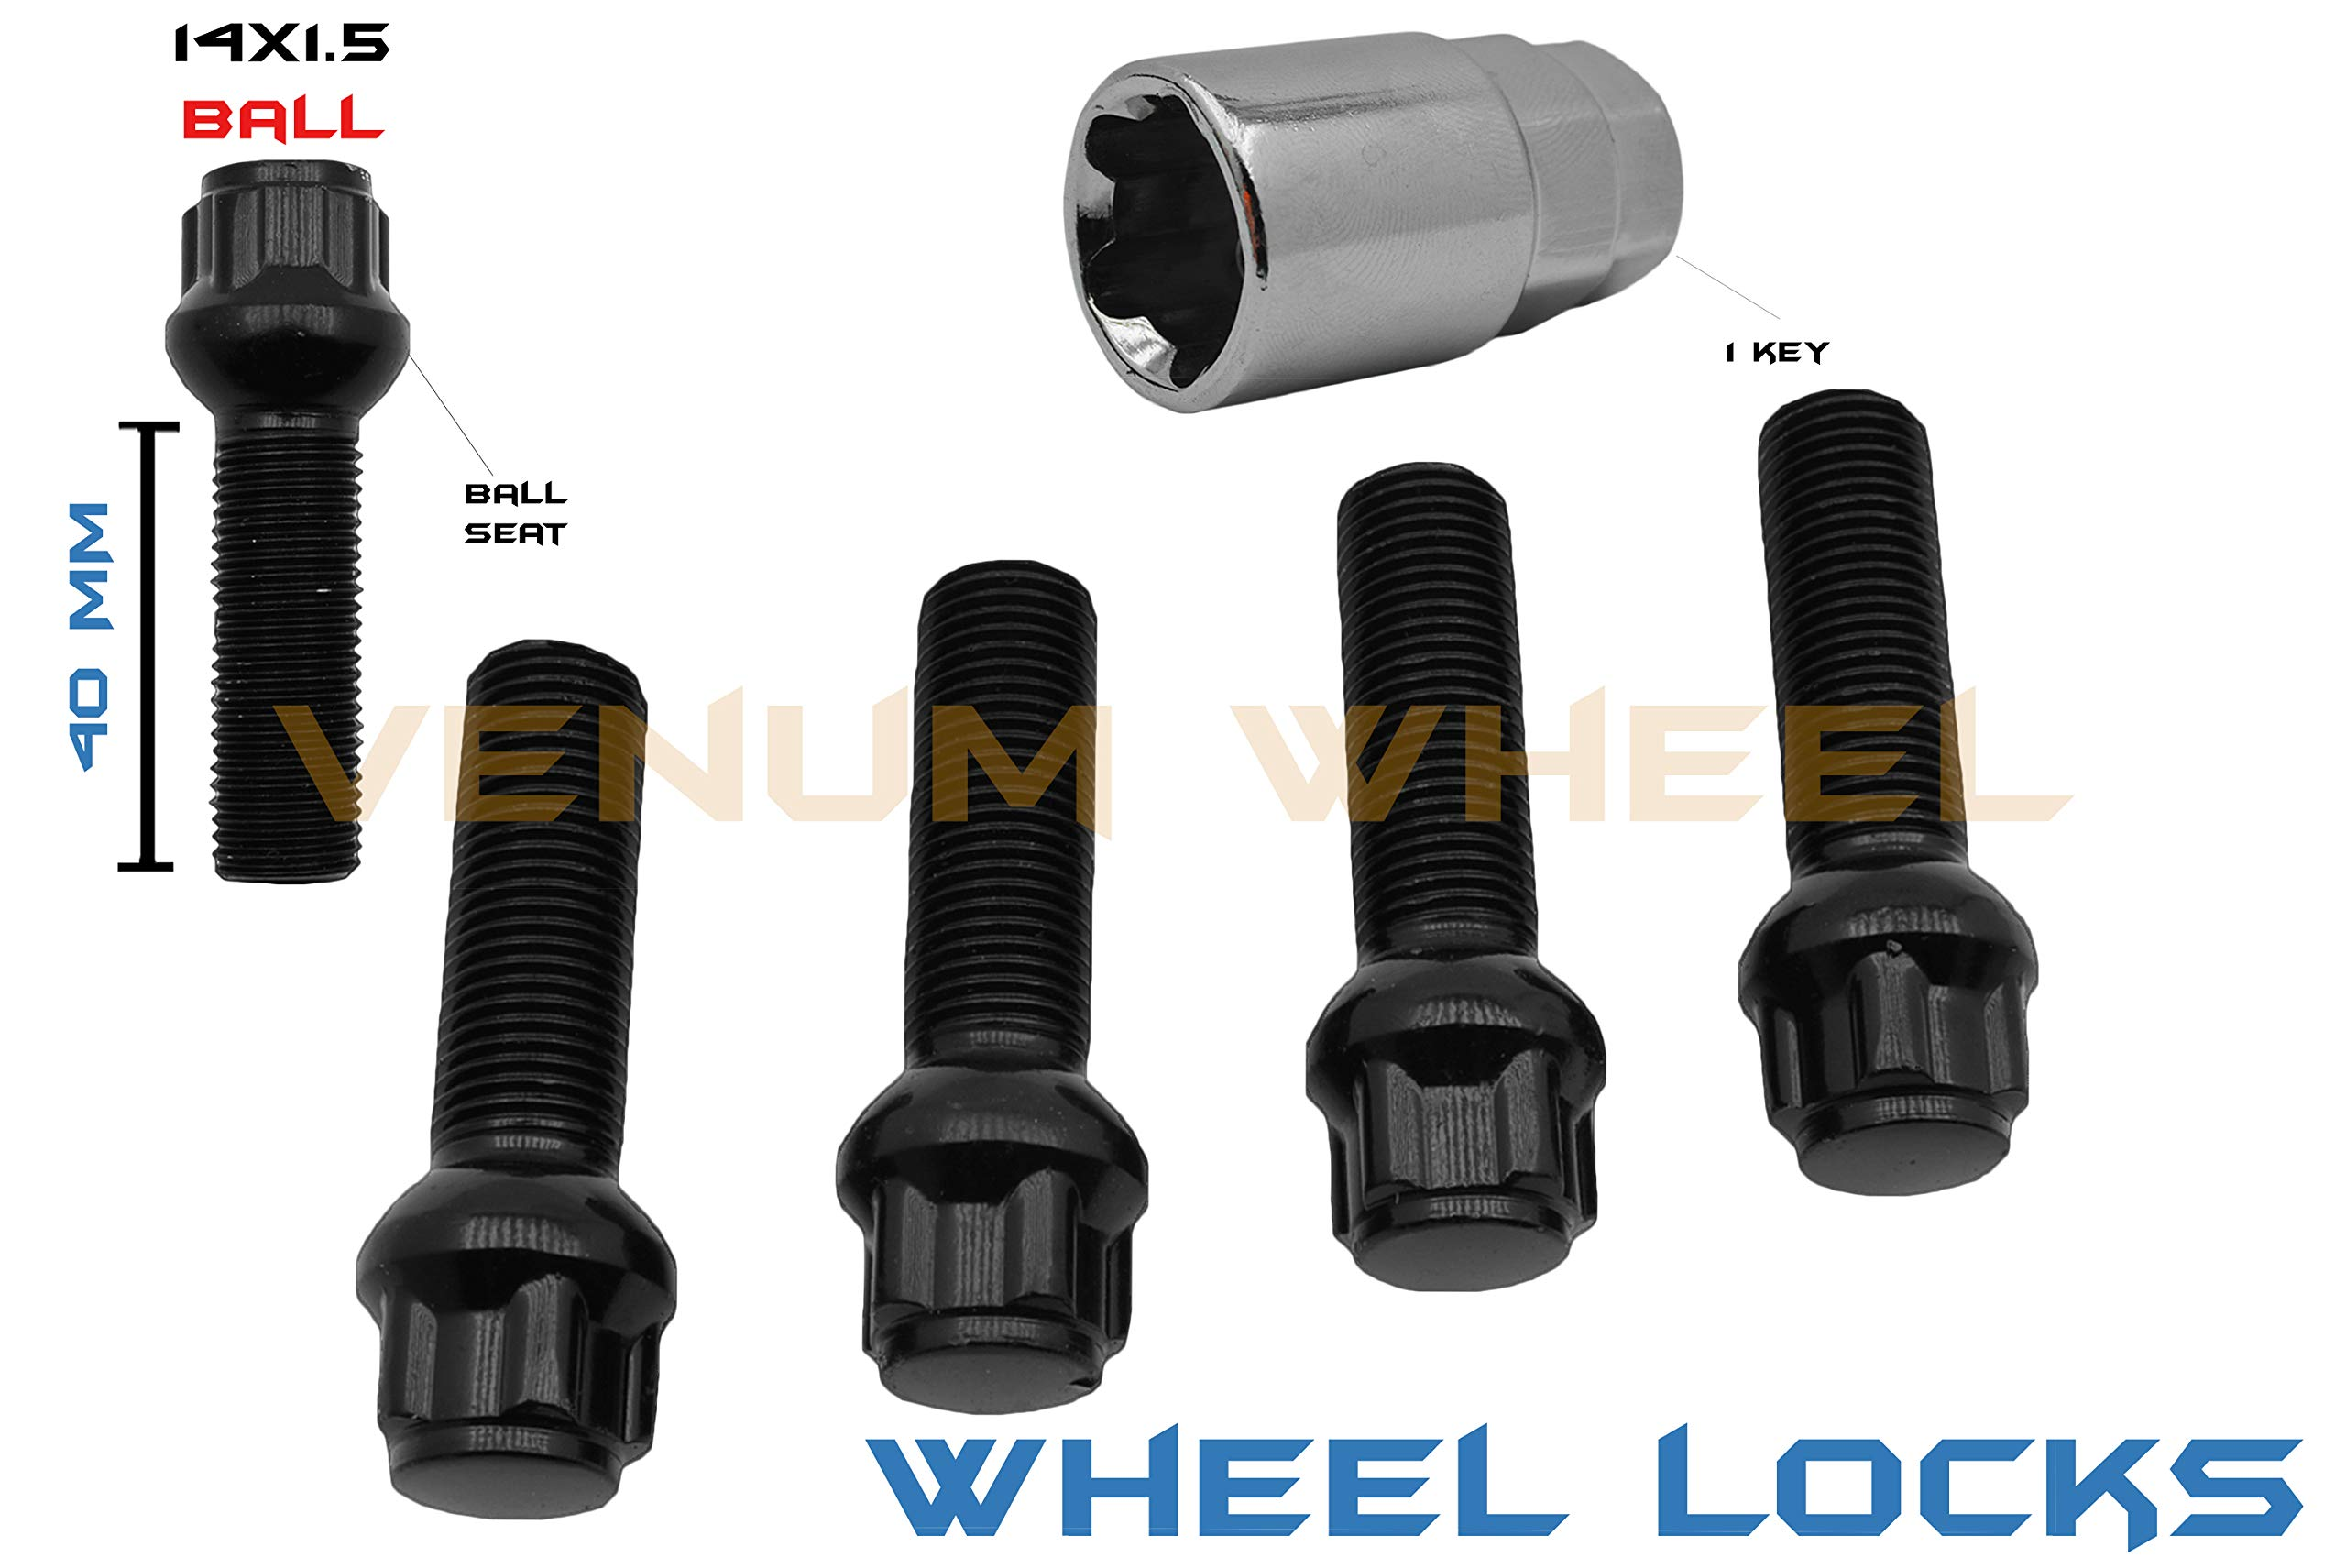 5 Pc M14x1.5 Steel Black Wheel Locks Lug Bolts | Ball Seat | 40 mm EXTENDED Shank Length | +1 Key | Compatible With Audi Mercedes Benz Volkswagen W/Factory Wheels